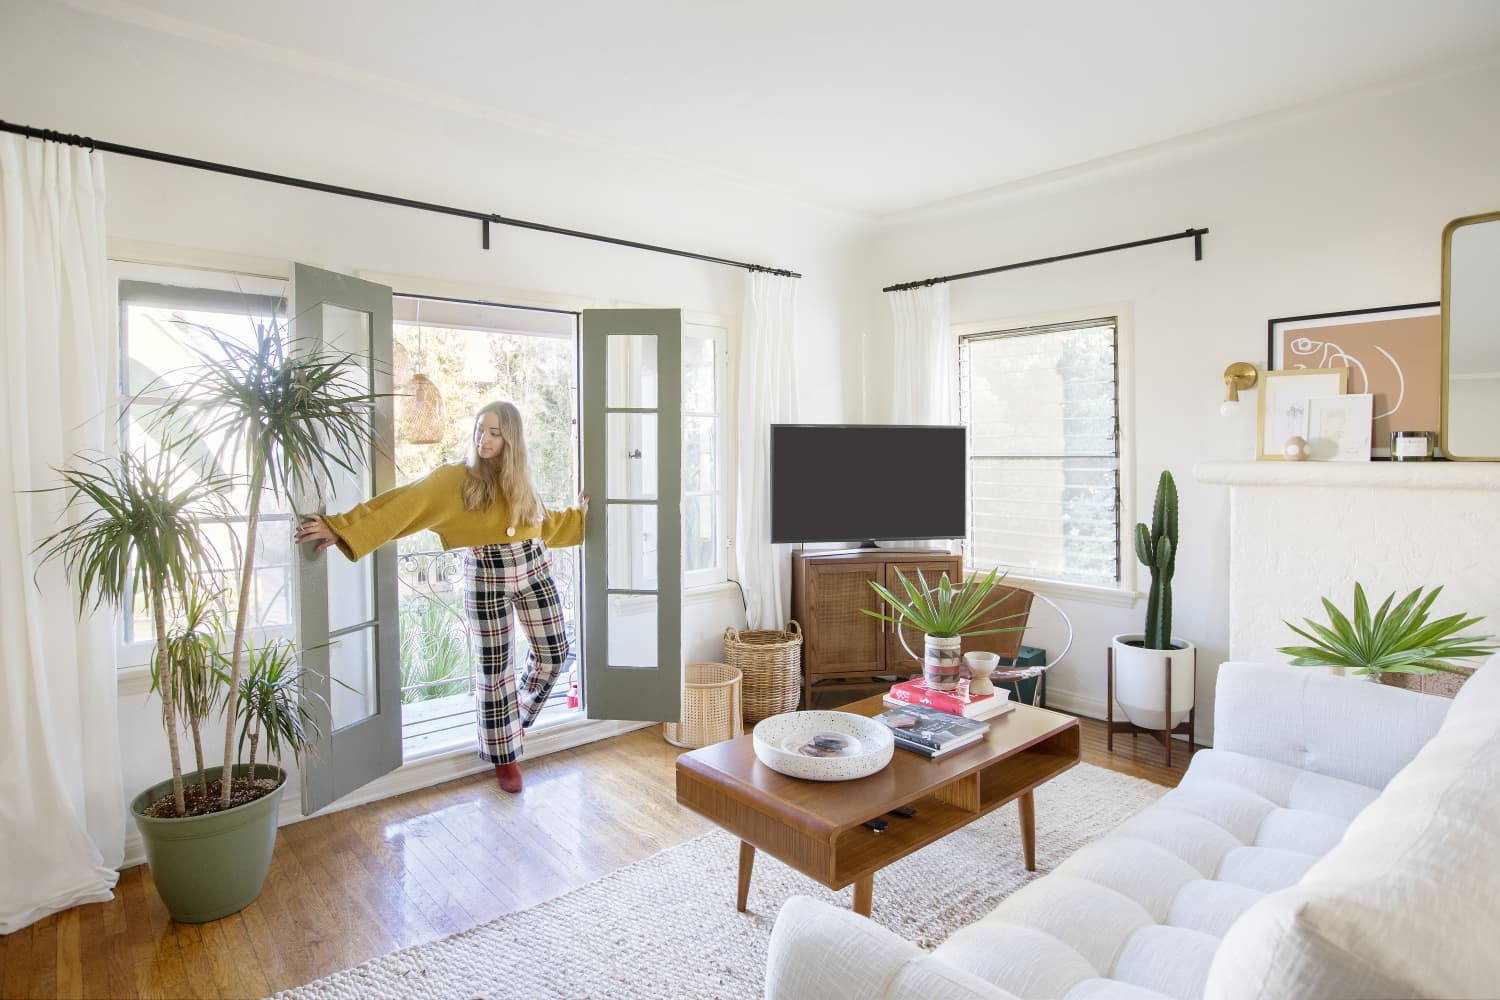 The First Thing You Should Do Before You Take on Any New Home Projects